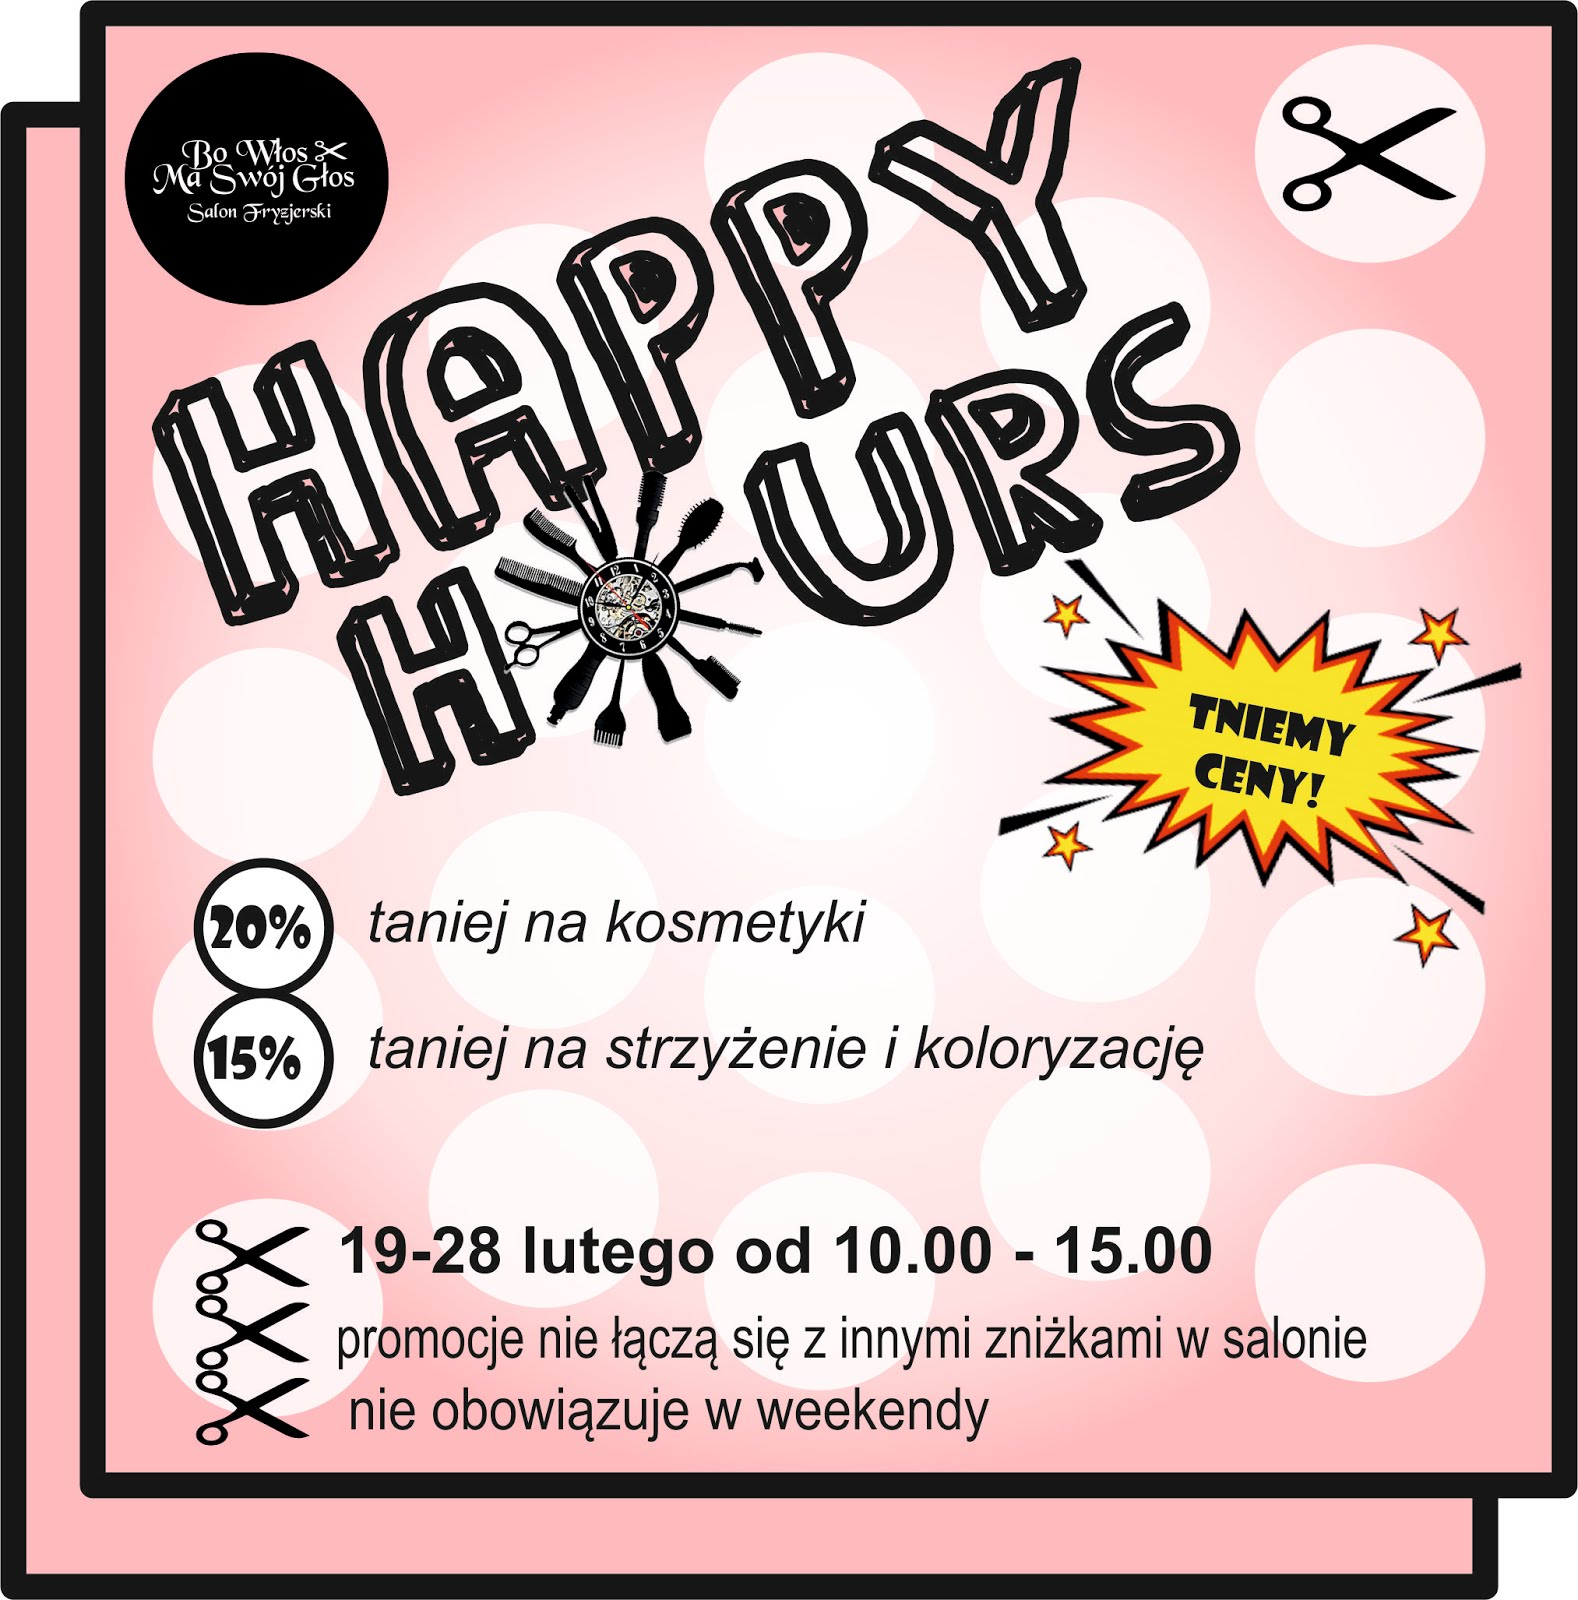 Happy Hours w Poznaniu!